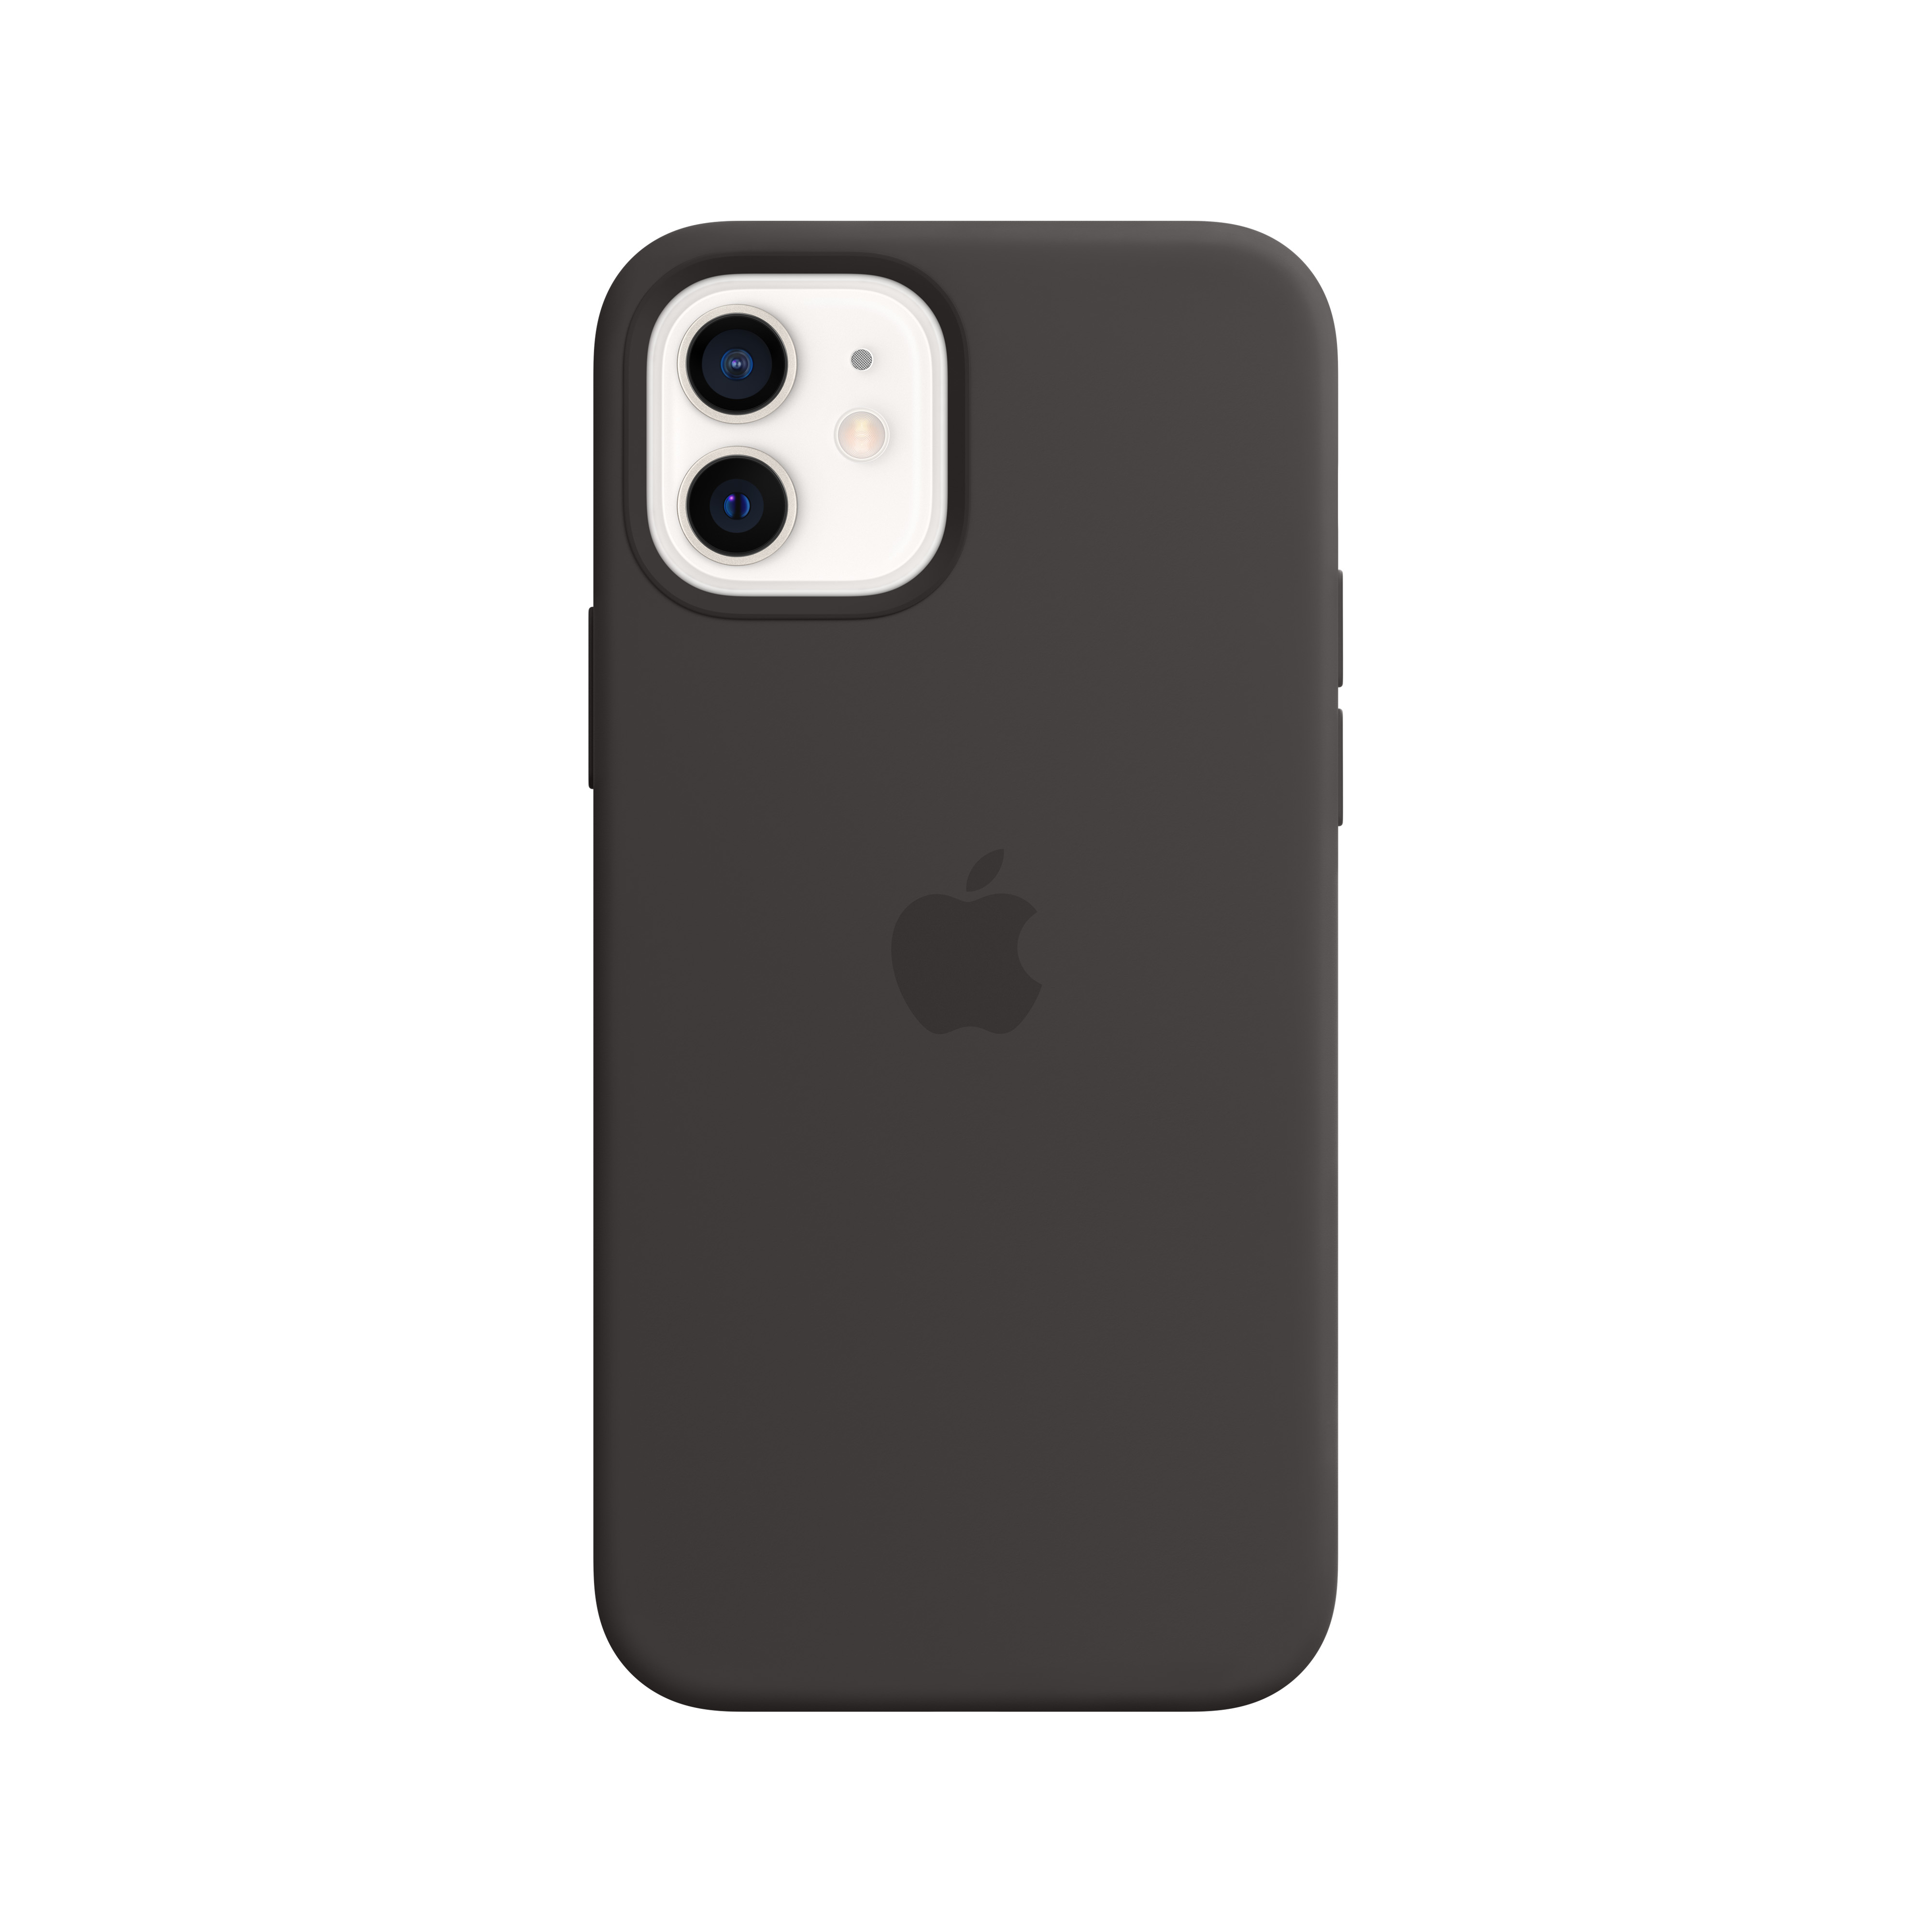 Apple - iPhone 12 | 12 Pro Silicone Case with MagSafe - Black Mhl73zm/a